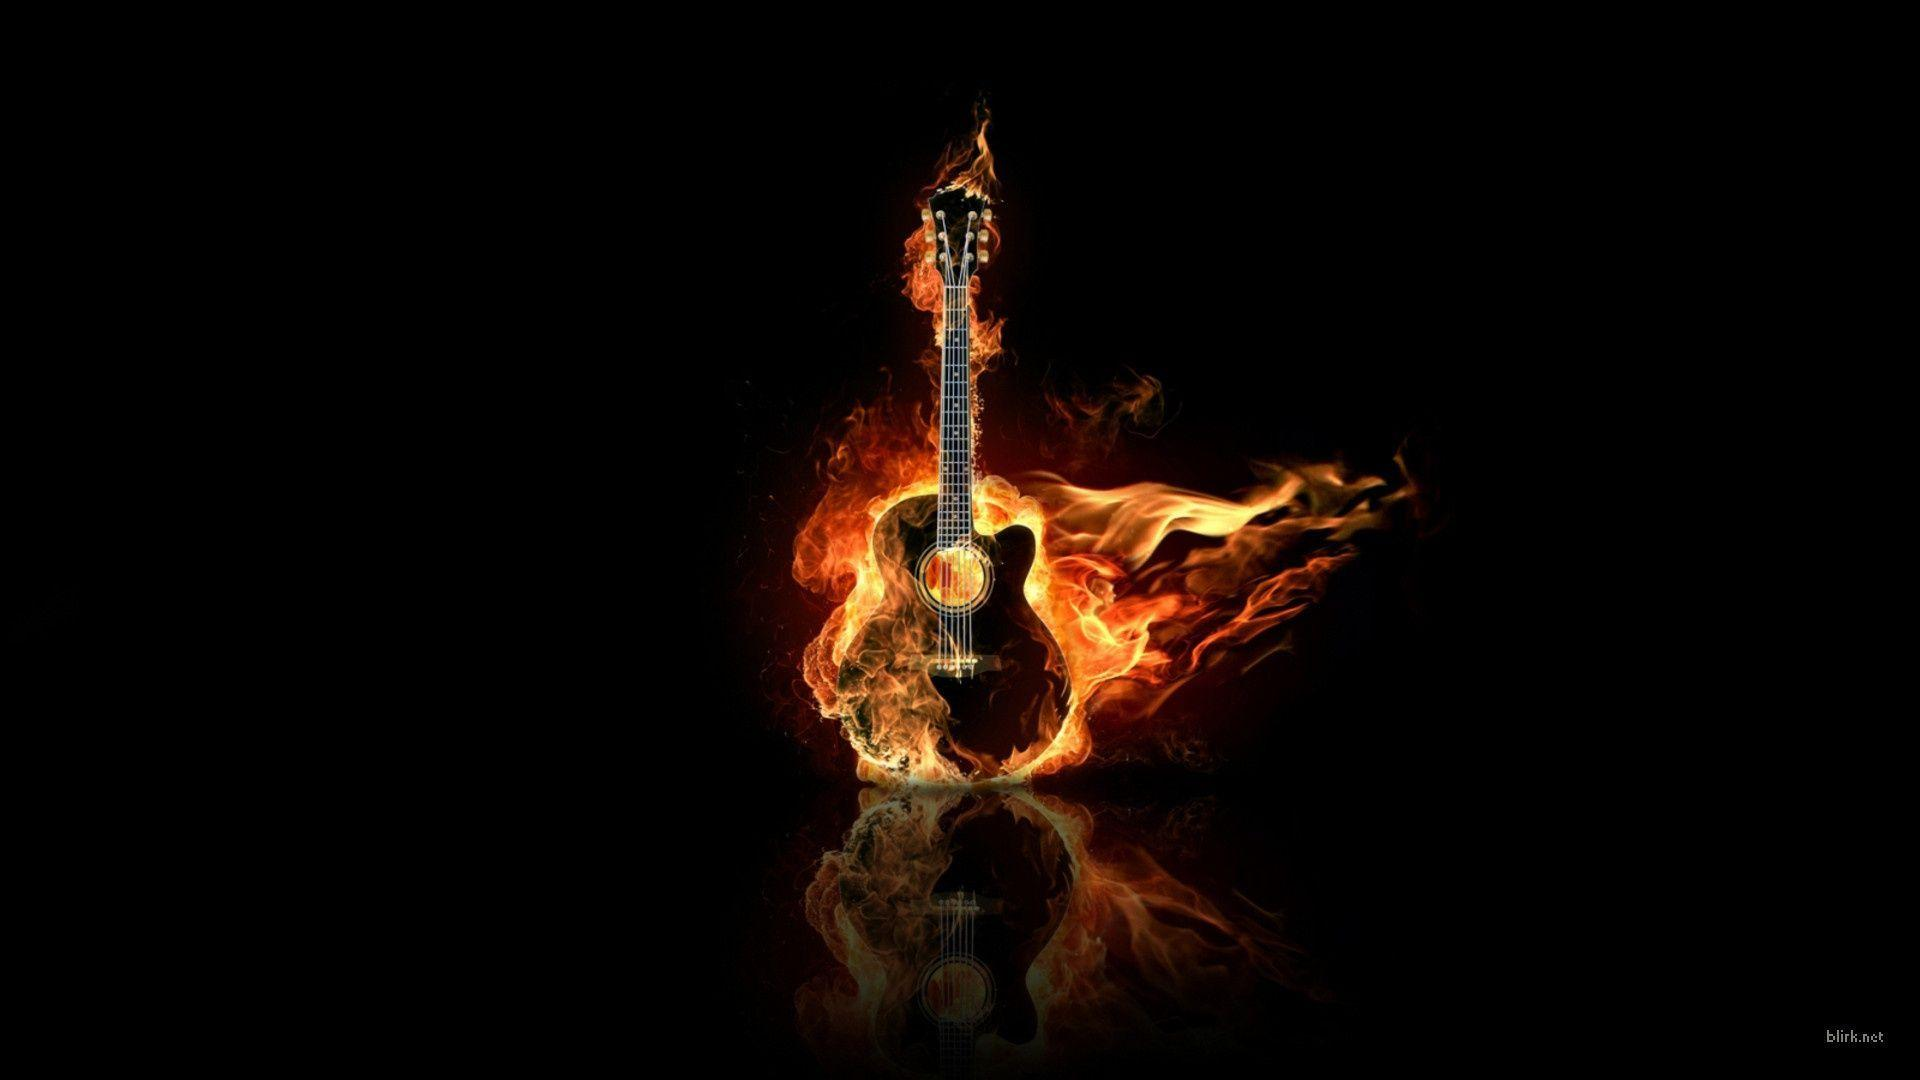 Wallpapers For > Guitar Wallpaper Hd